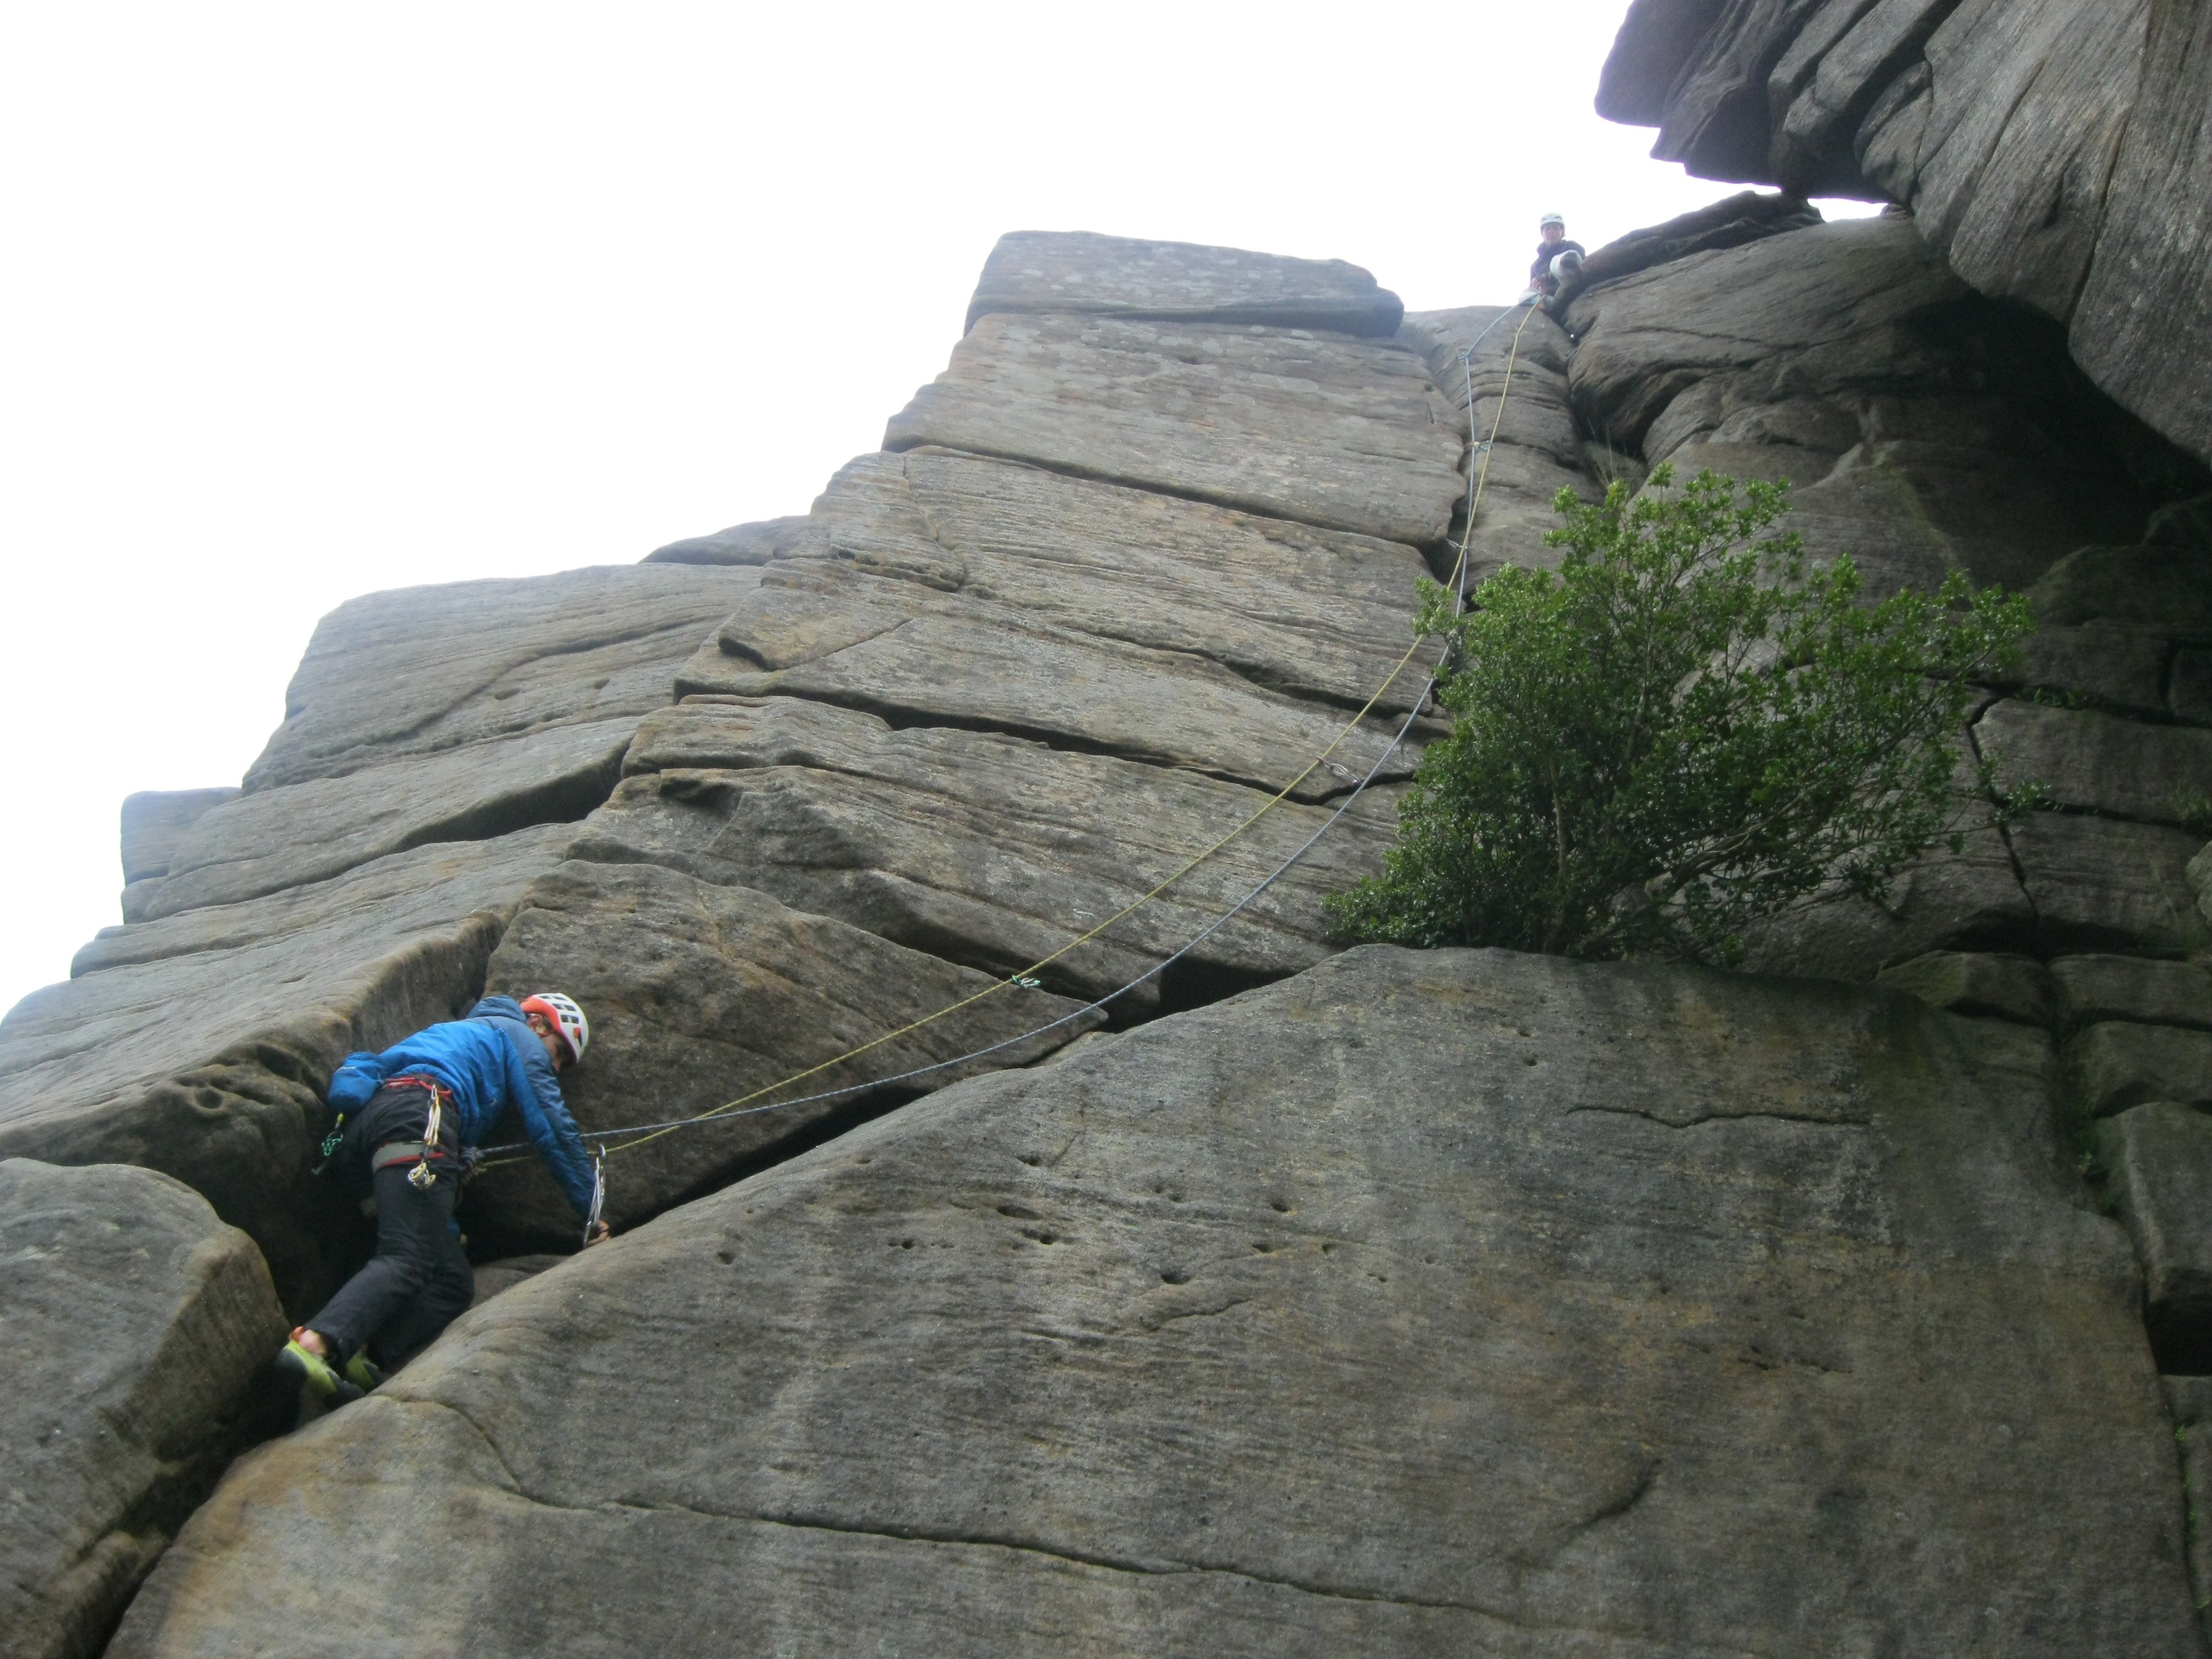 A picture of Molly sat at the top of the crag and Jesse climbing the route  on second.